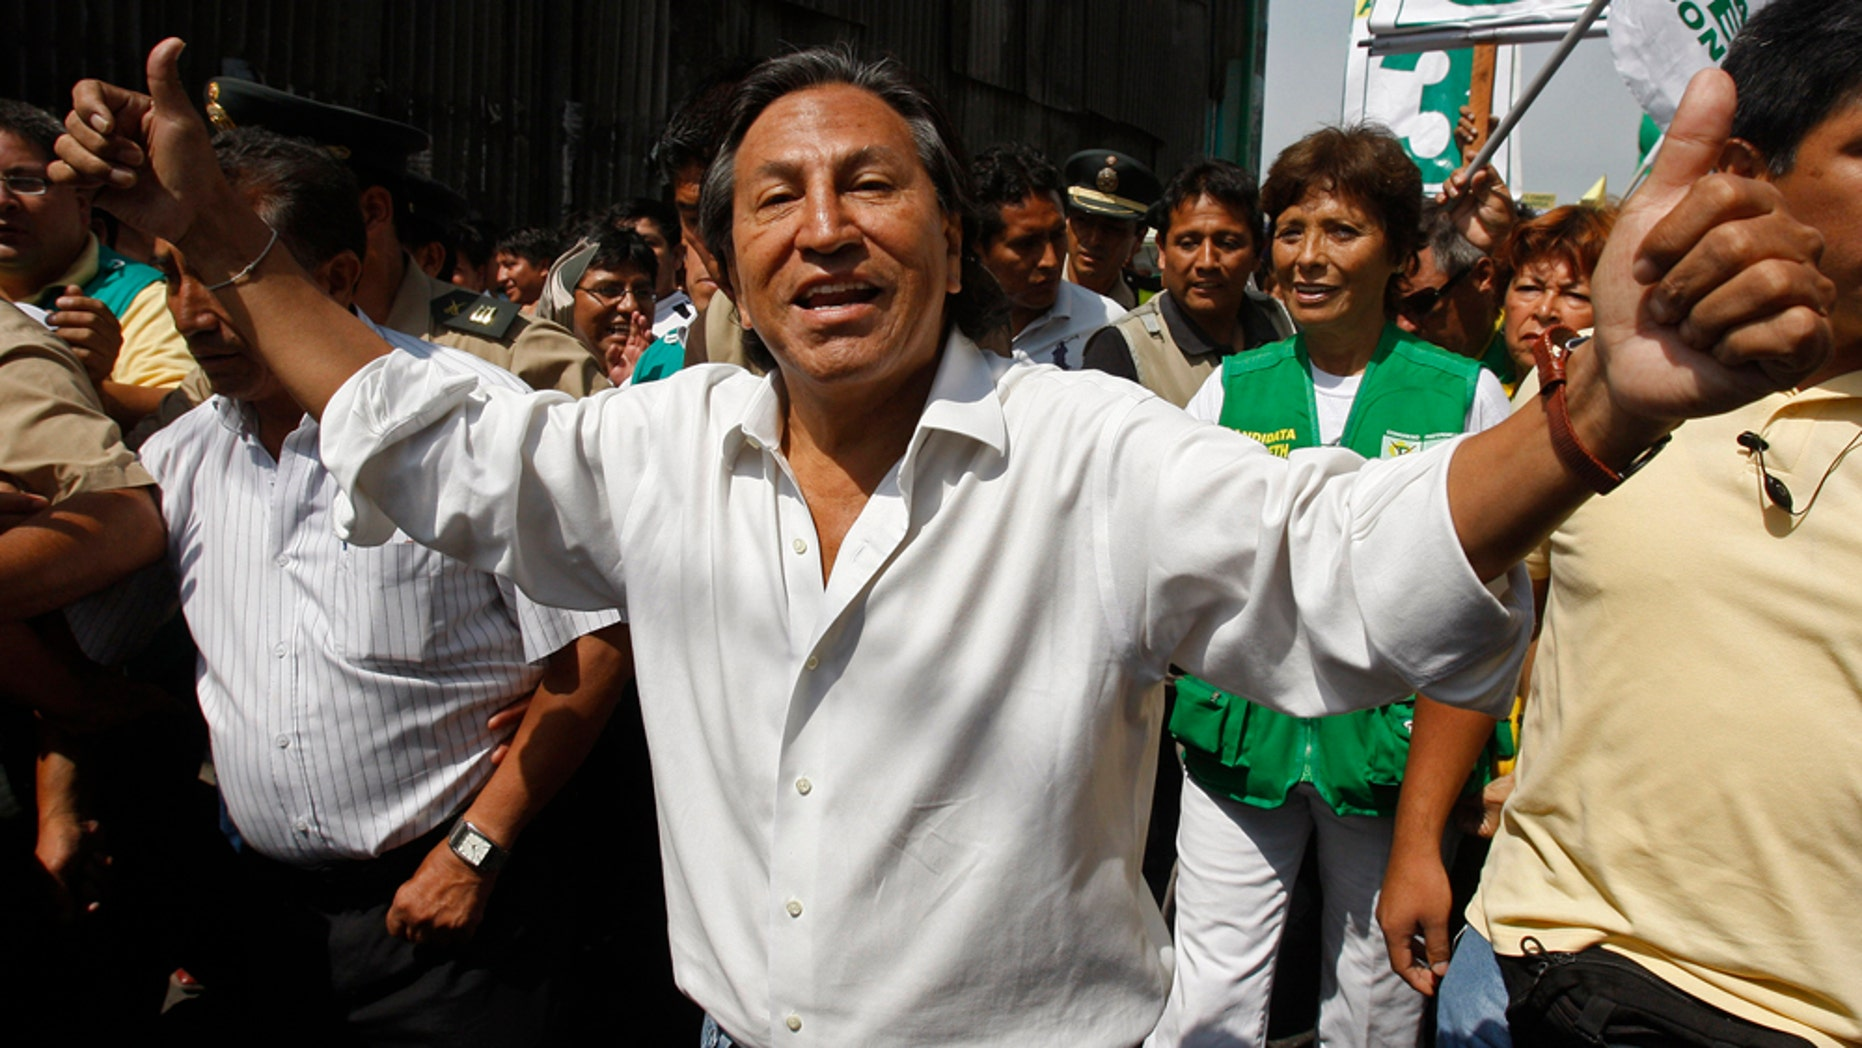 Peru's former President Alejandro Toledo campaigns for reelection at the Santa Anita wholesale market in Lima, Peru, Thursday March 17, 2011. Peru will hold general elections on April 10. (AP Photo/Karel Navarro)